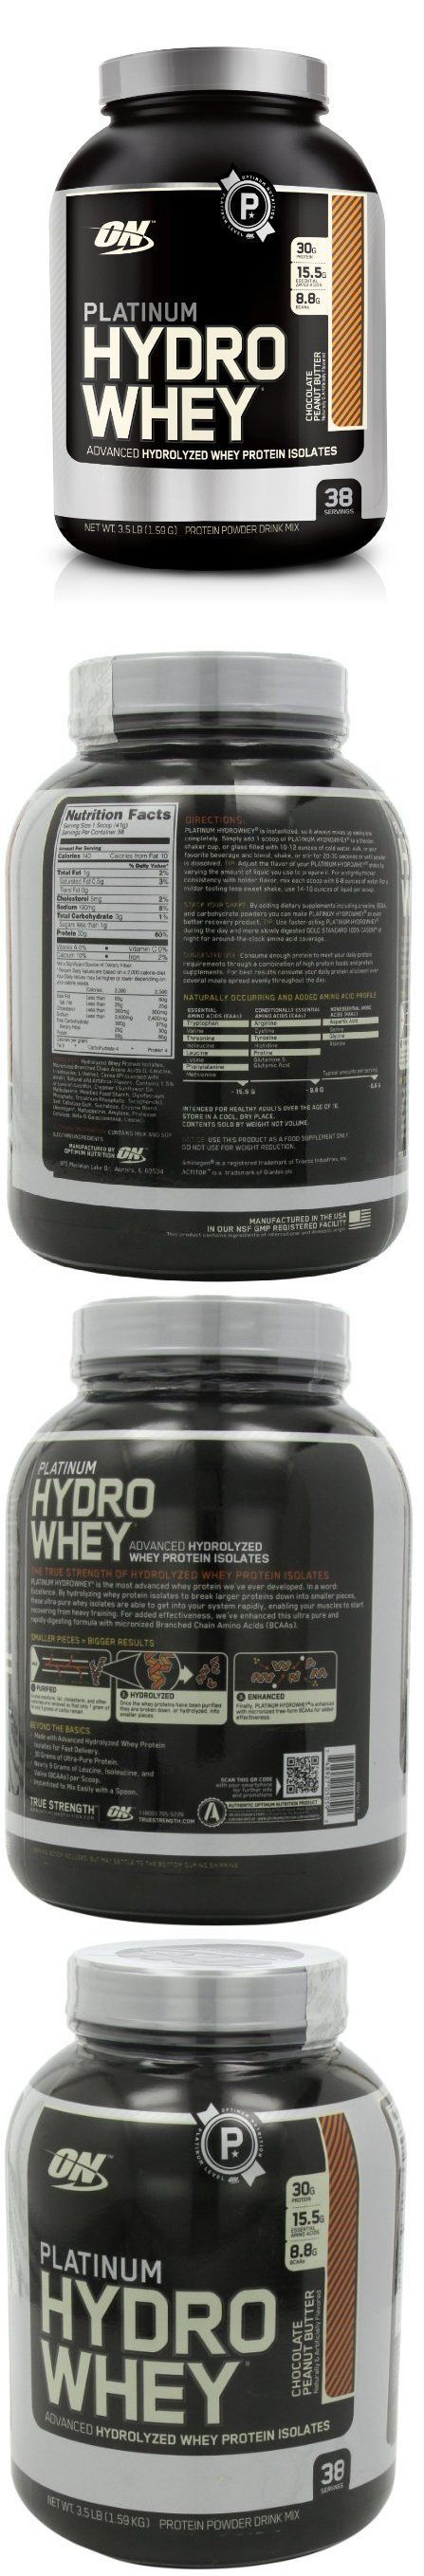 Protein Shakes and Bodybuilding: Optimum Nutrition Platinum Hydro Whey Protein Powder 3.5 Lb - Choose Your Flavor -> BUY IT NOW ONLY: $58.87 on eBay!